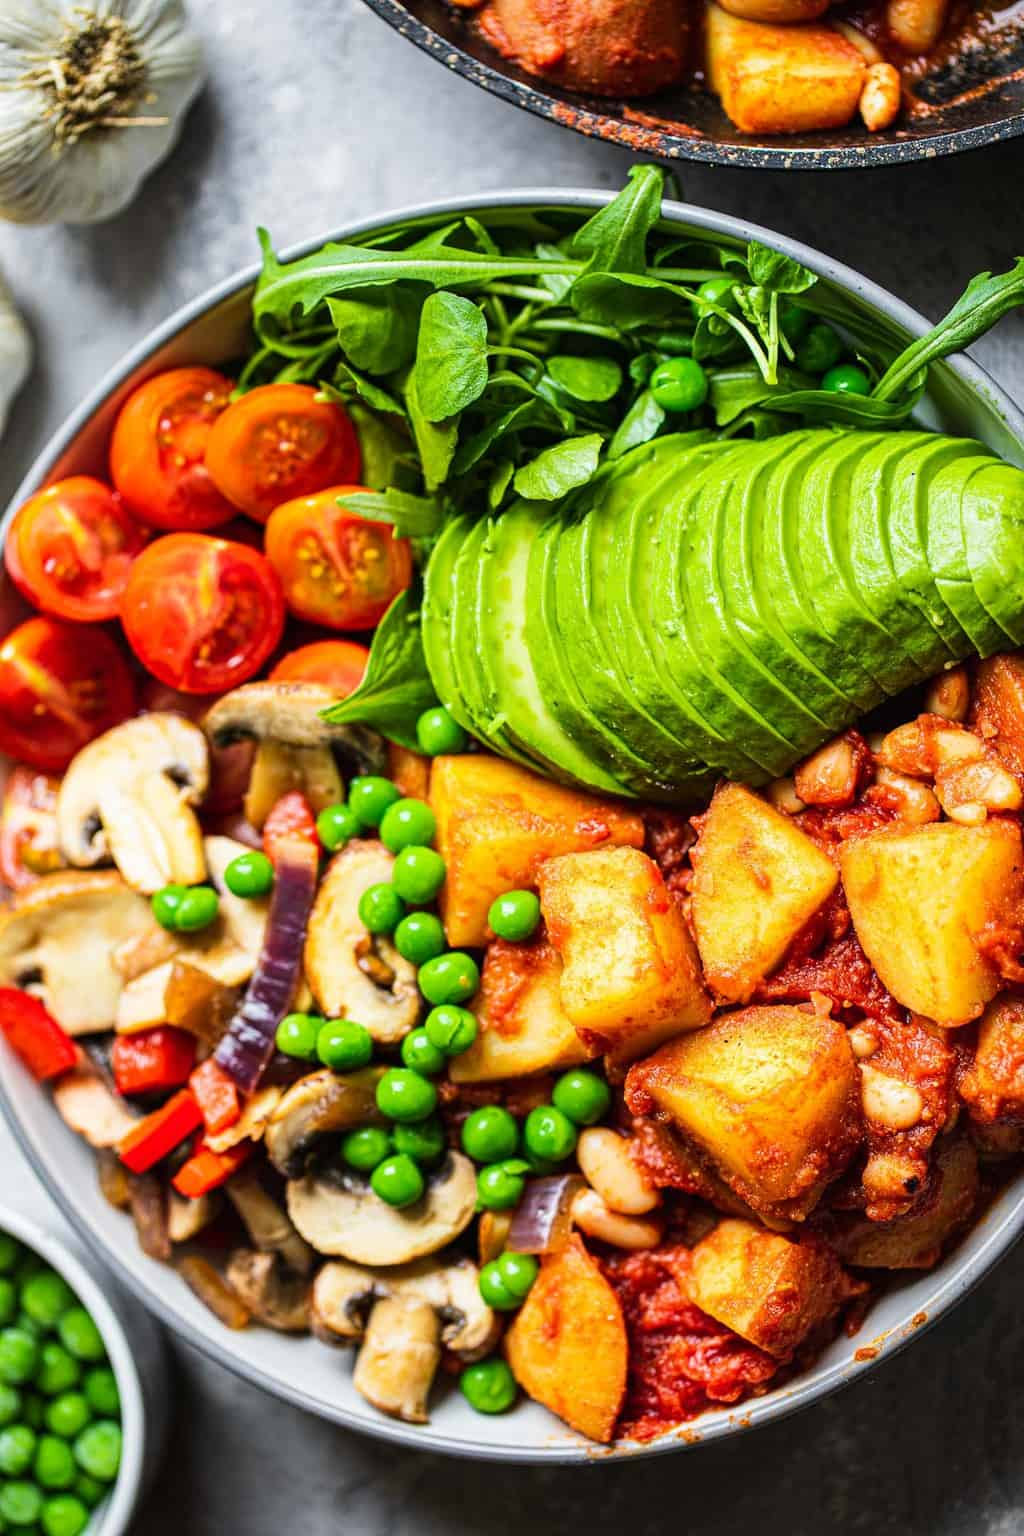 Bowl with potatoes, avocado and mushrooms